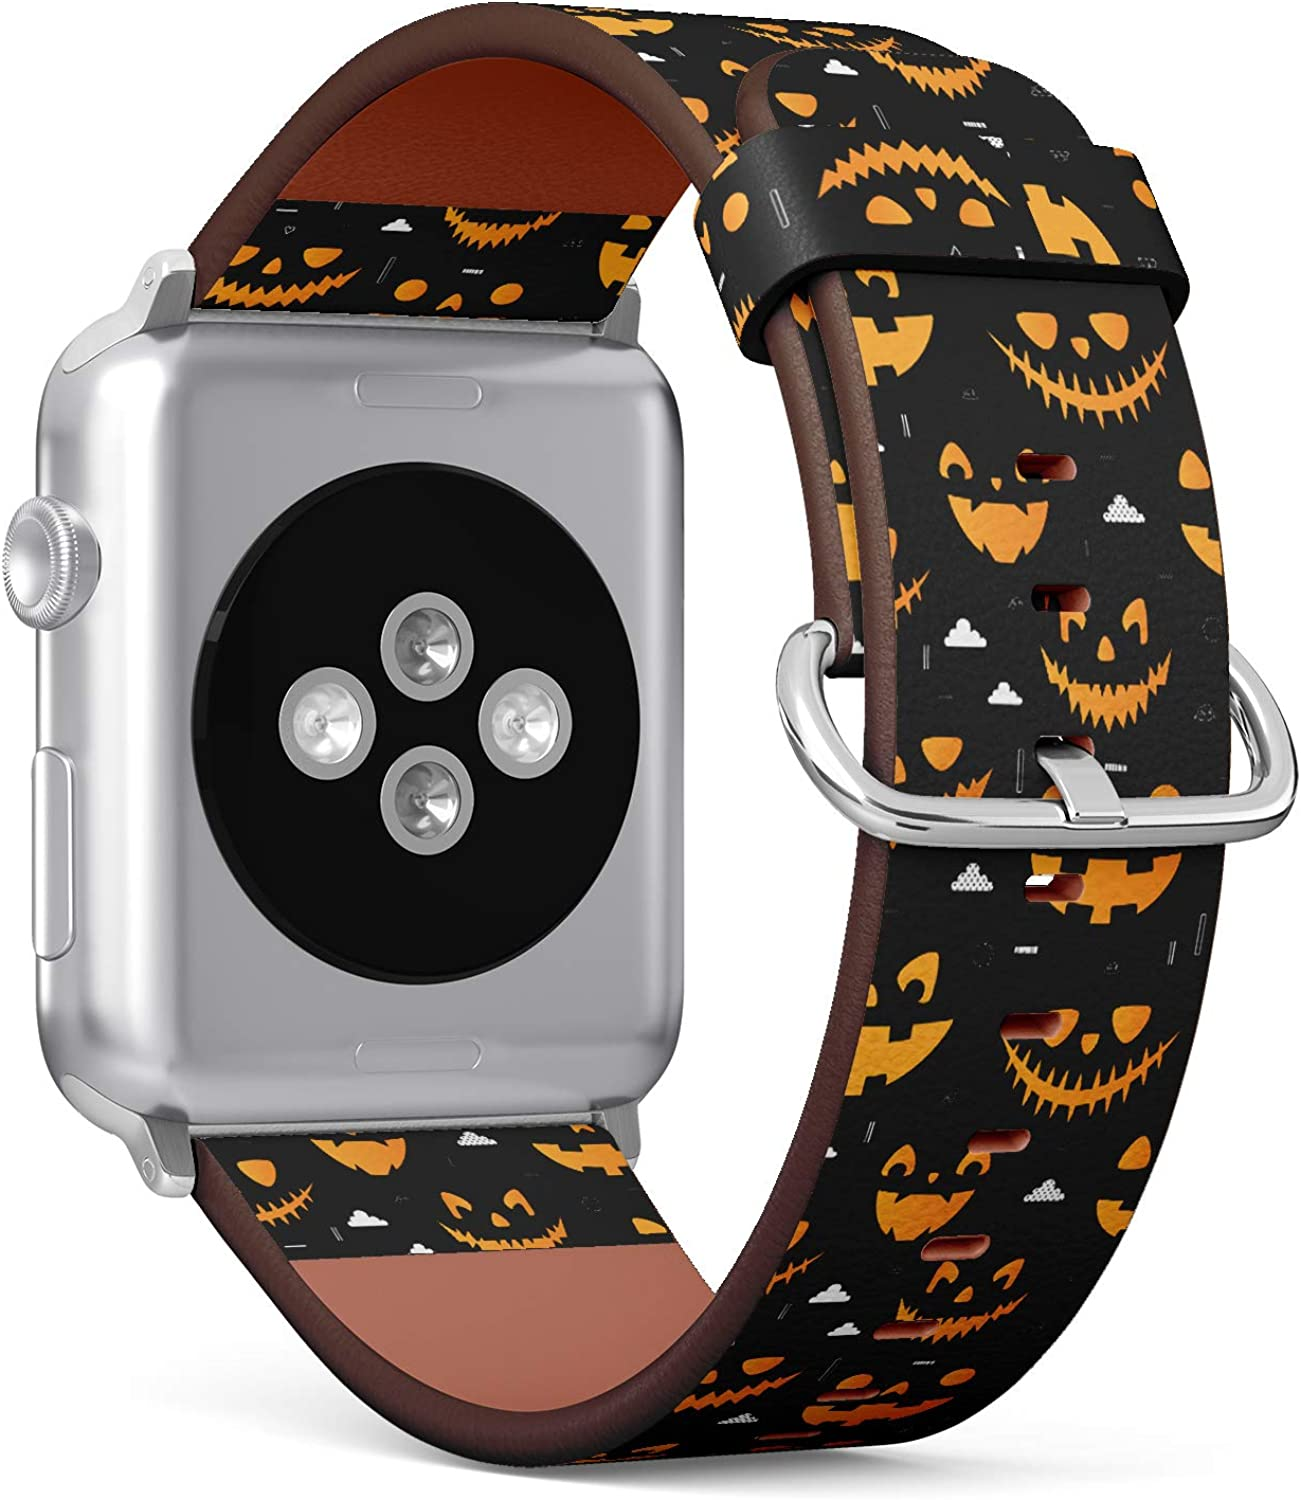 (Orange Halloween Pumpkins Carved Faces Silhouettes on Black Background) Patterned Leather Wristband Strap for Apple Watch Series 4/3/2/1 gen,Replacement for iWatch 42mm / 44mm Bands